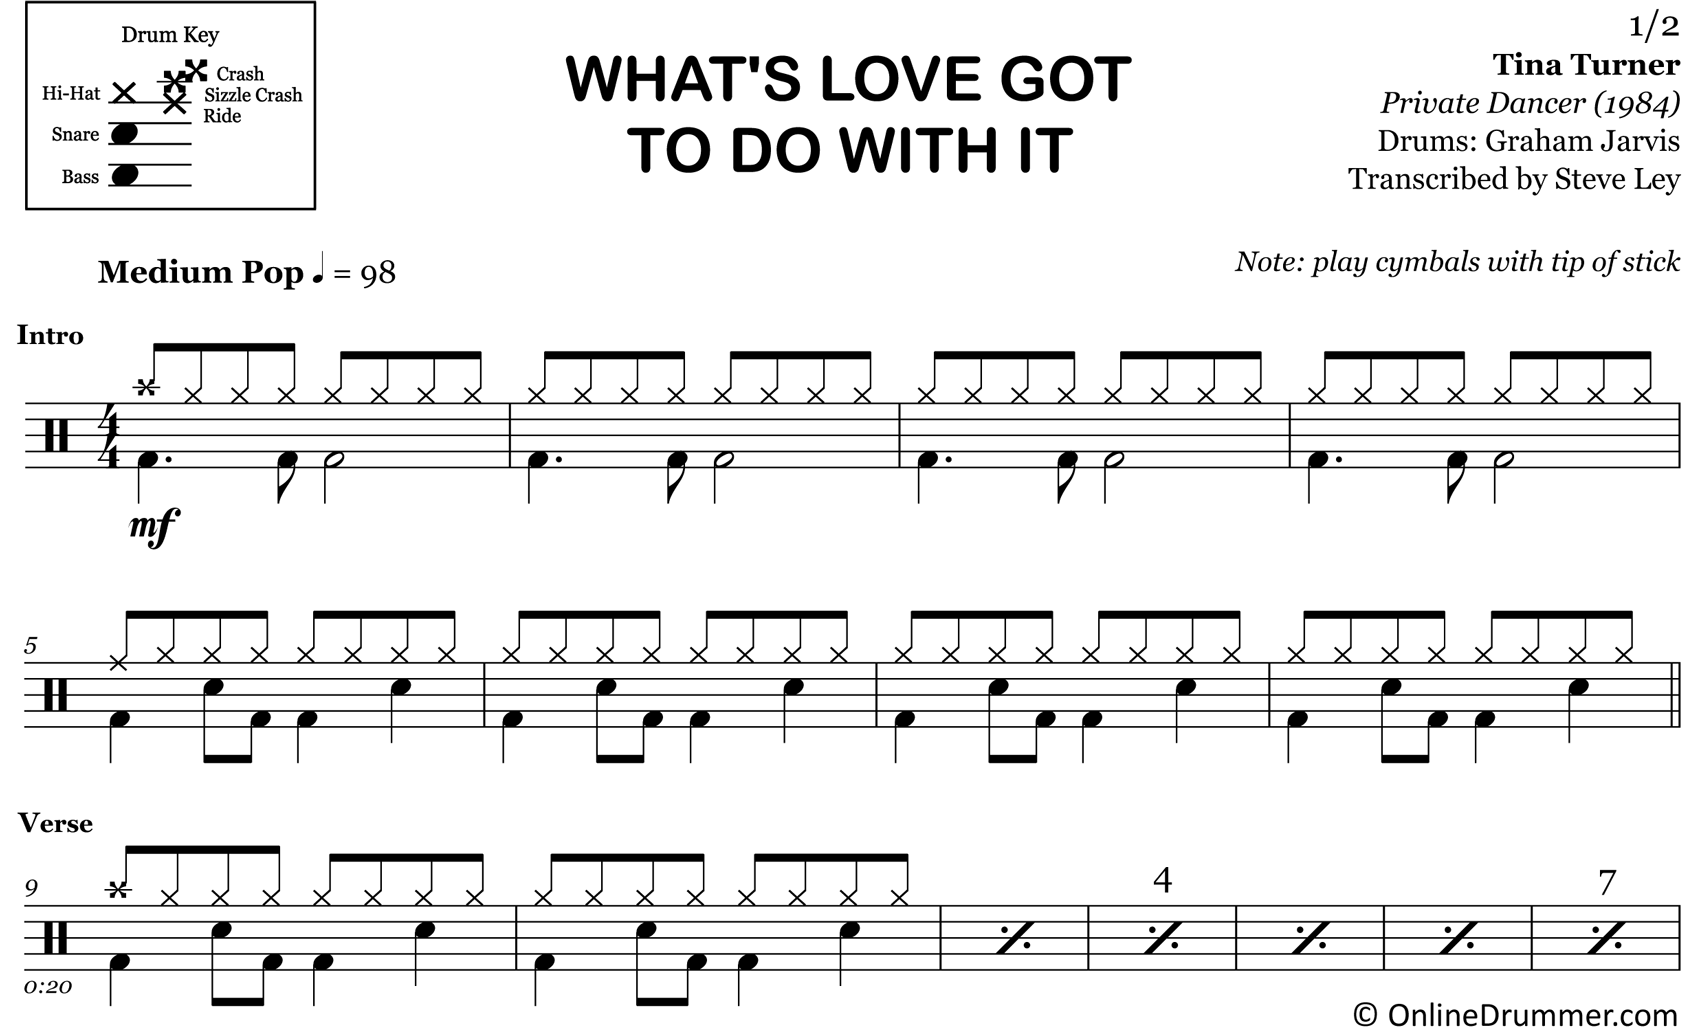 What's Love Got To Do With It - Tina Turner - Drum Sheet Music